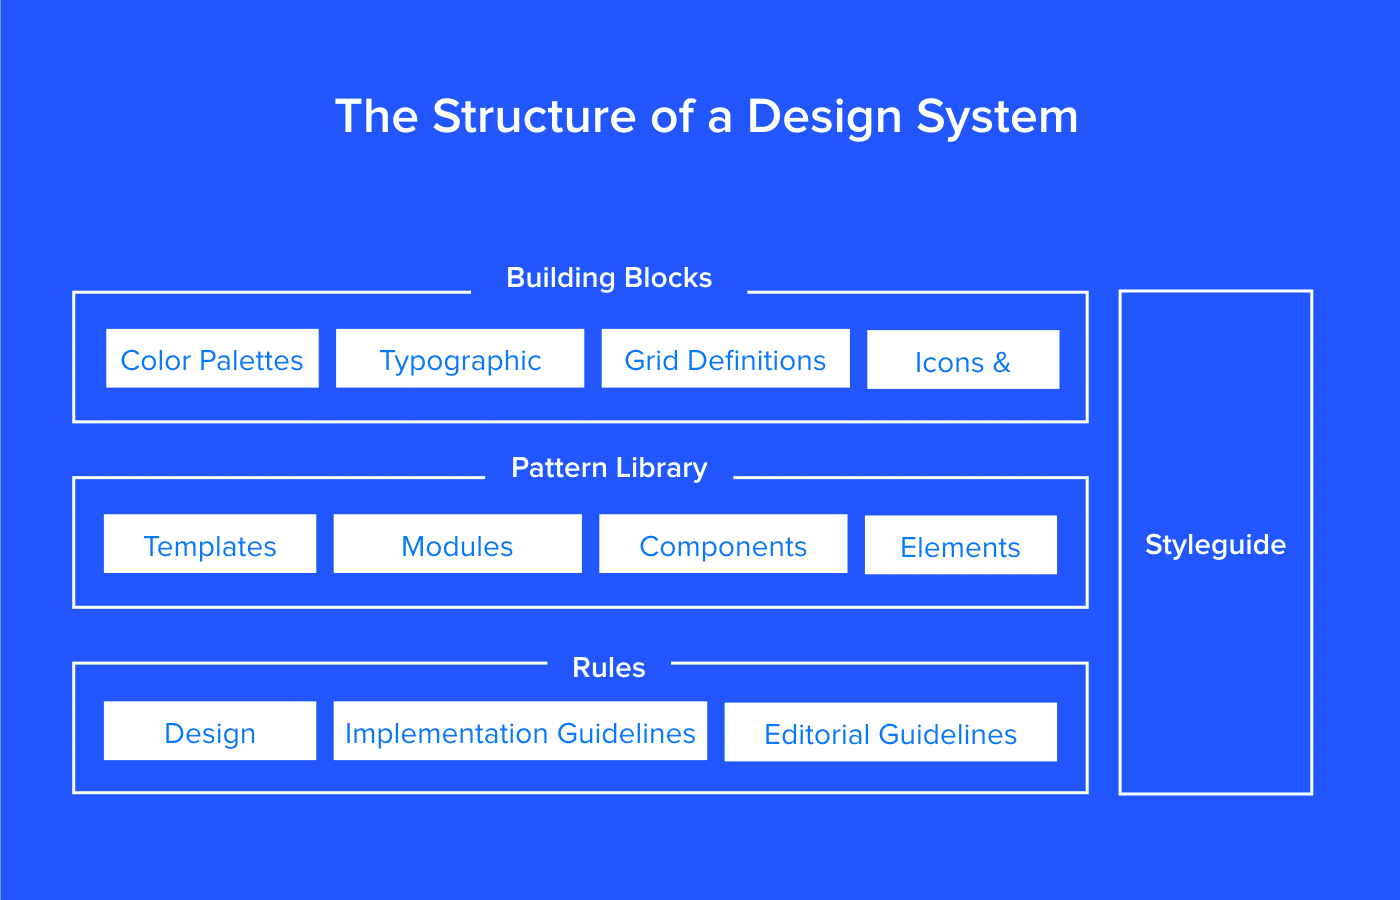 Design system as a product